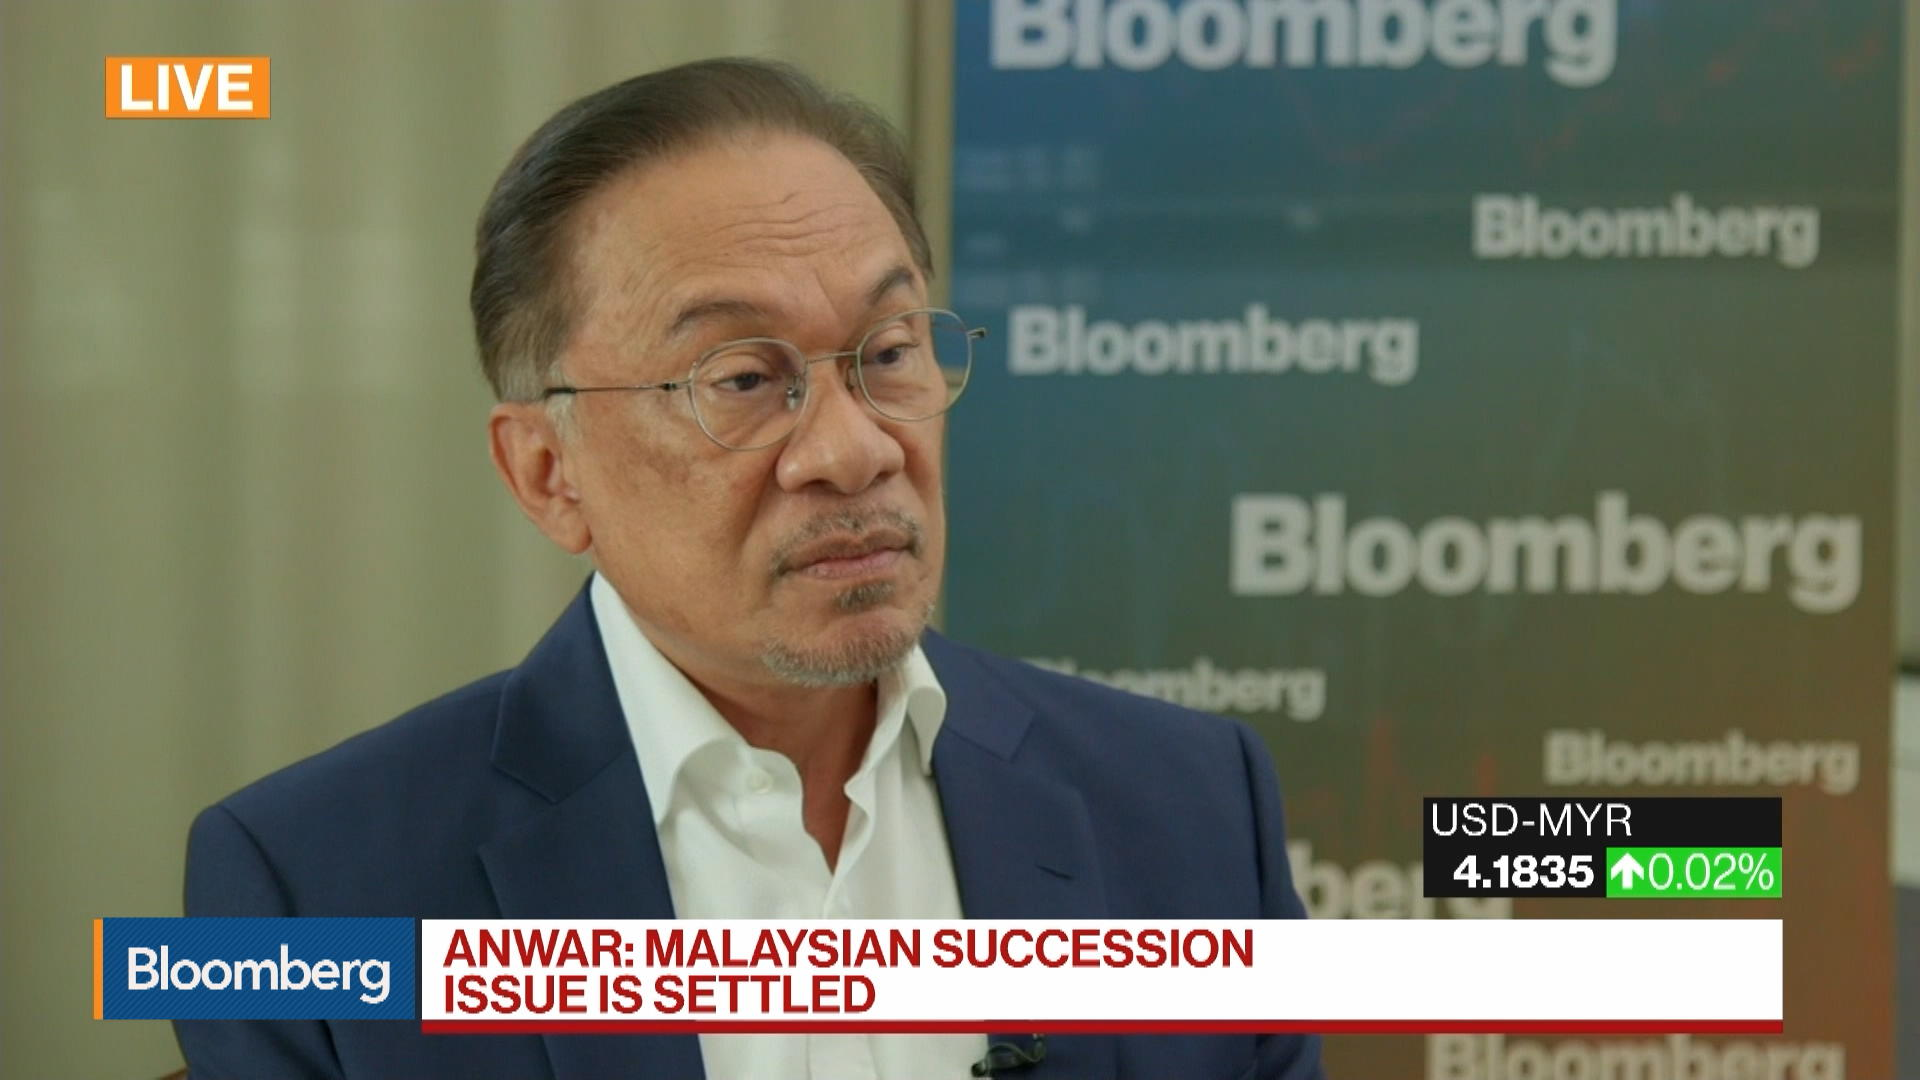 Malaysian People's Justice Party President Anwar Ibrahim on His Return to Power